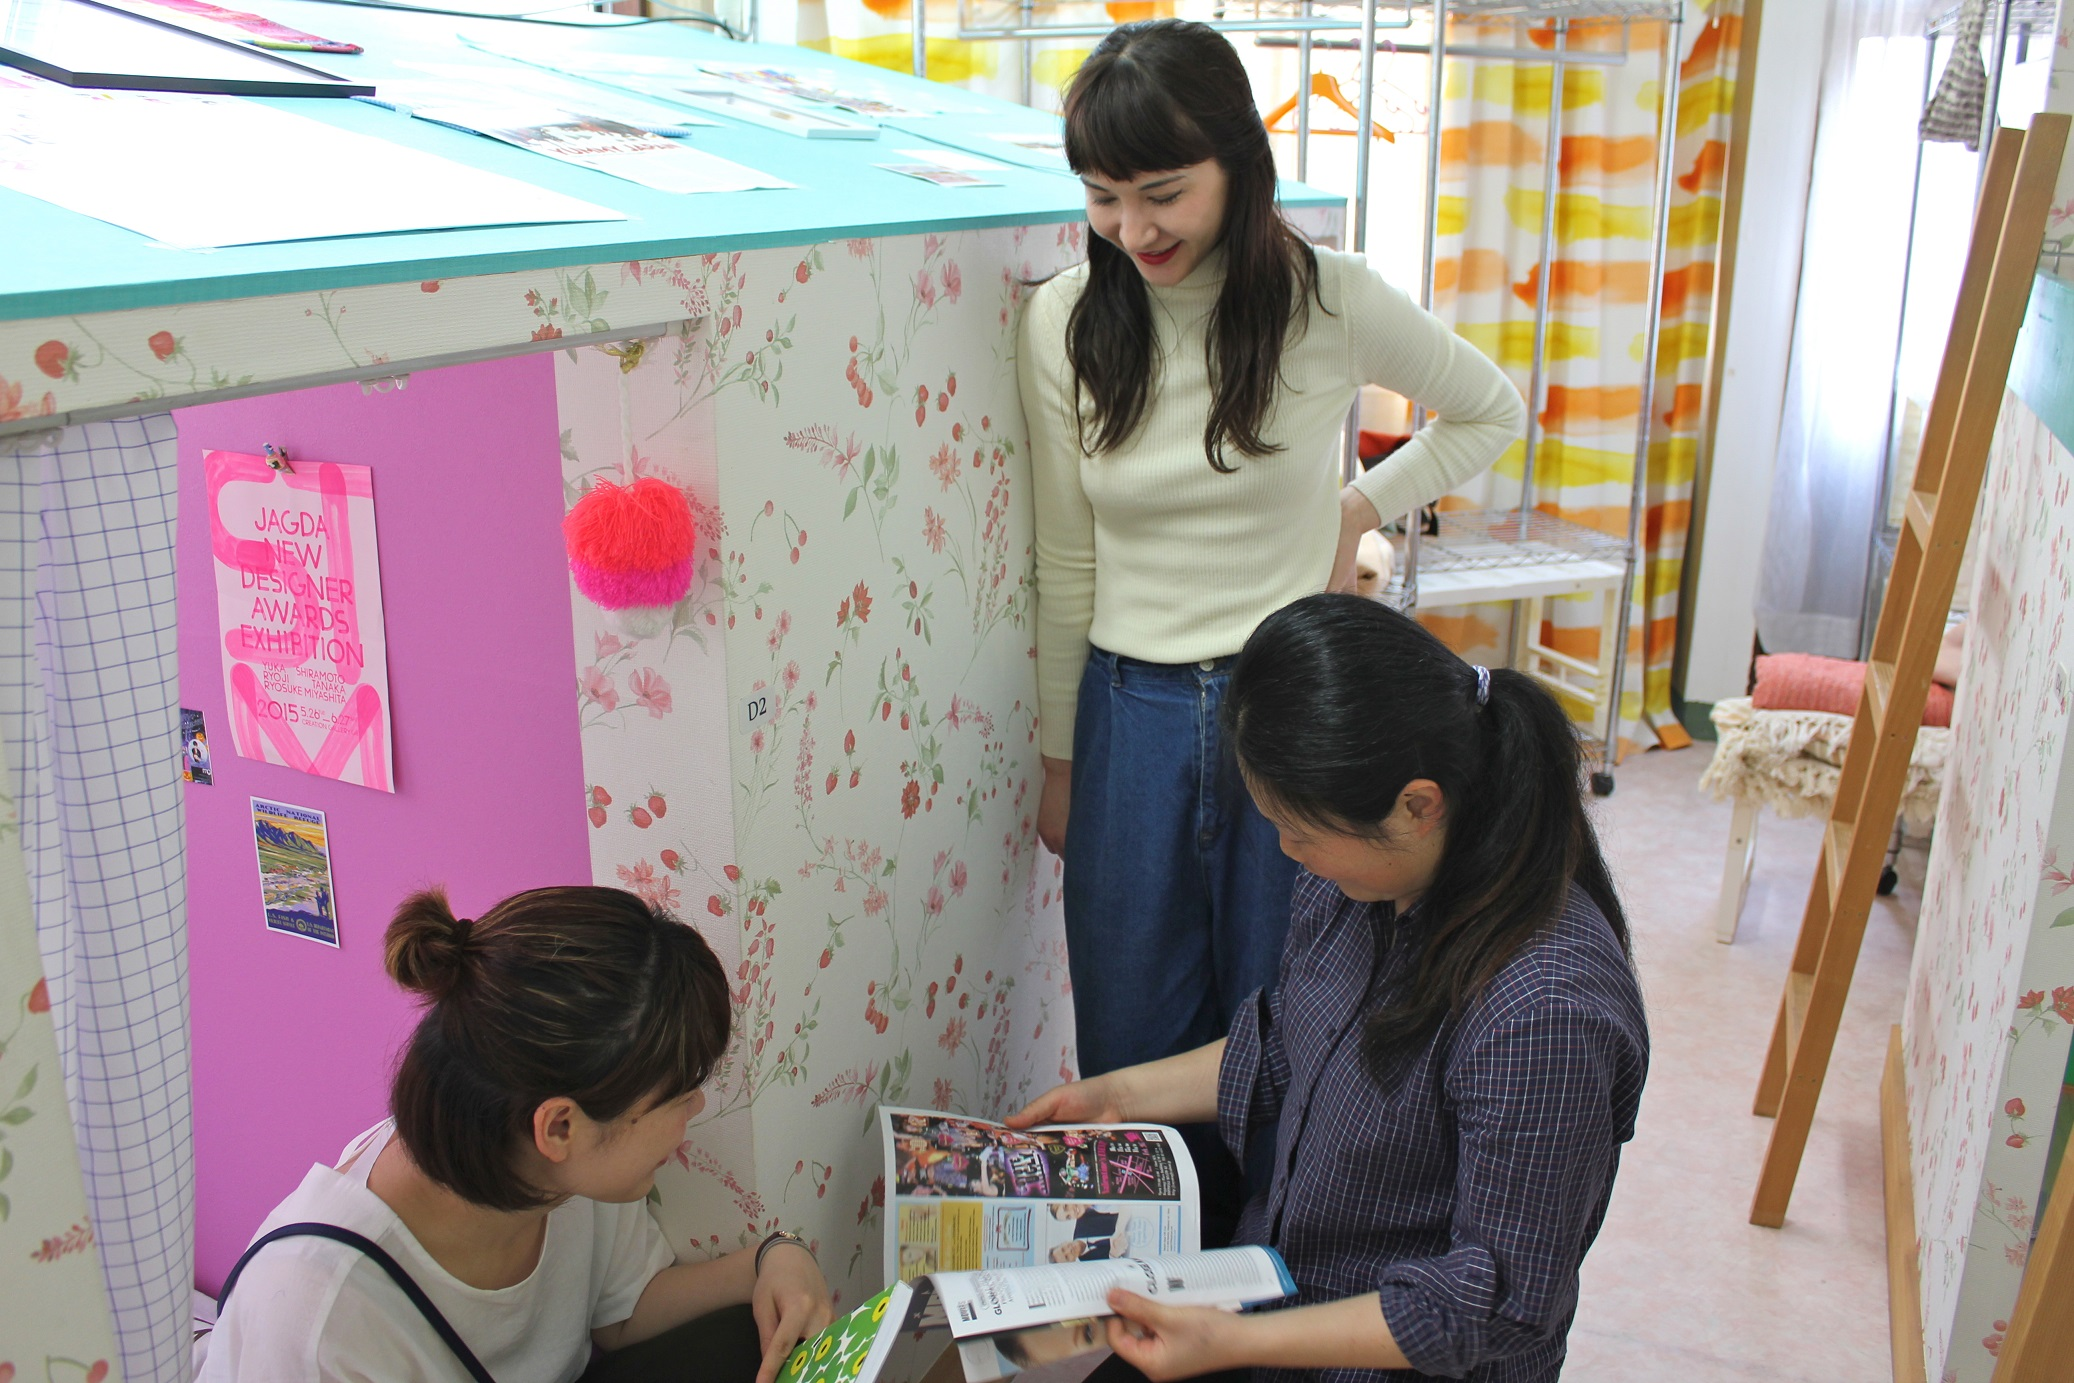 Women in hostel accommodation, Tokyo